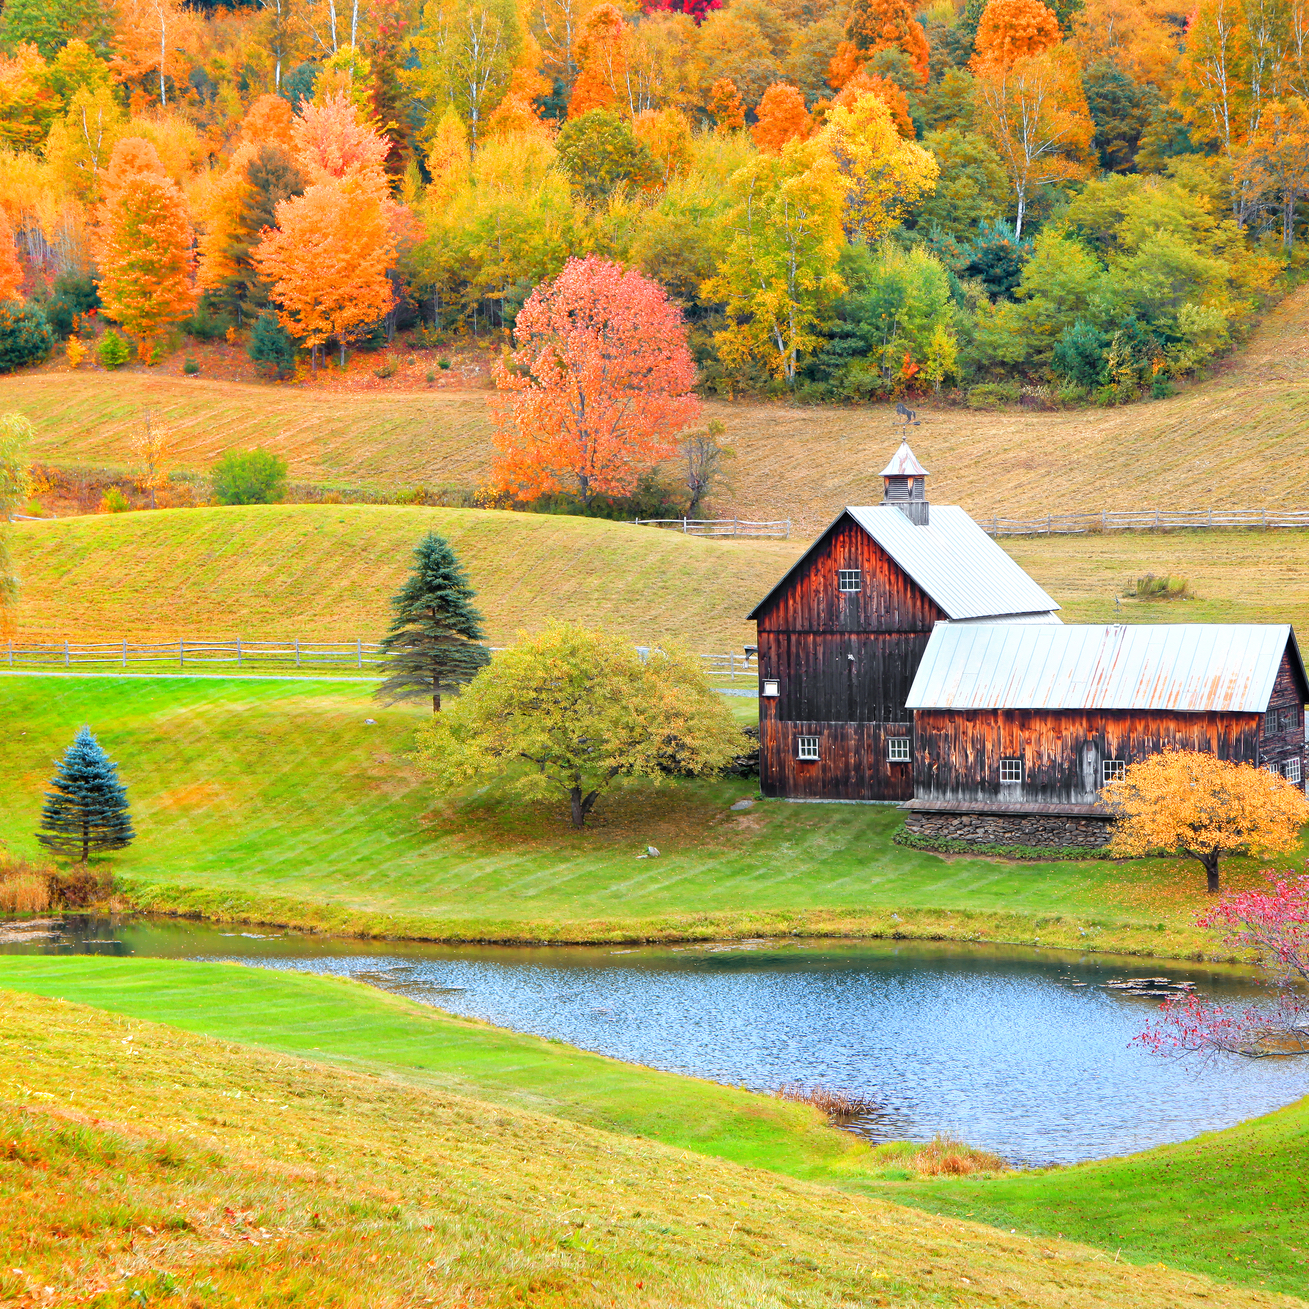 https://www.travelersjoy.com/blog/Fall_honeymoon_Destinations_Vermont.jpg